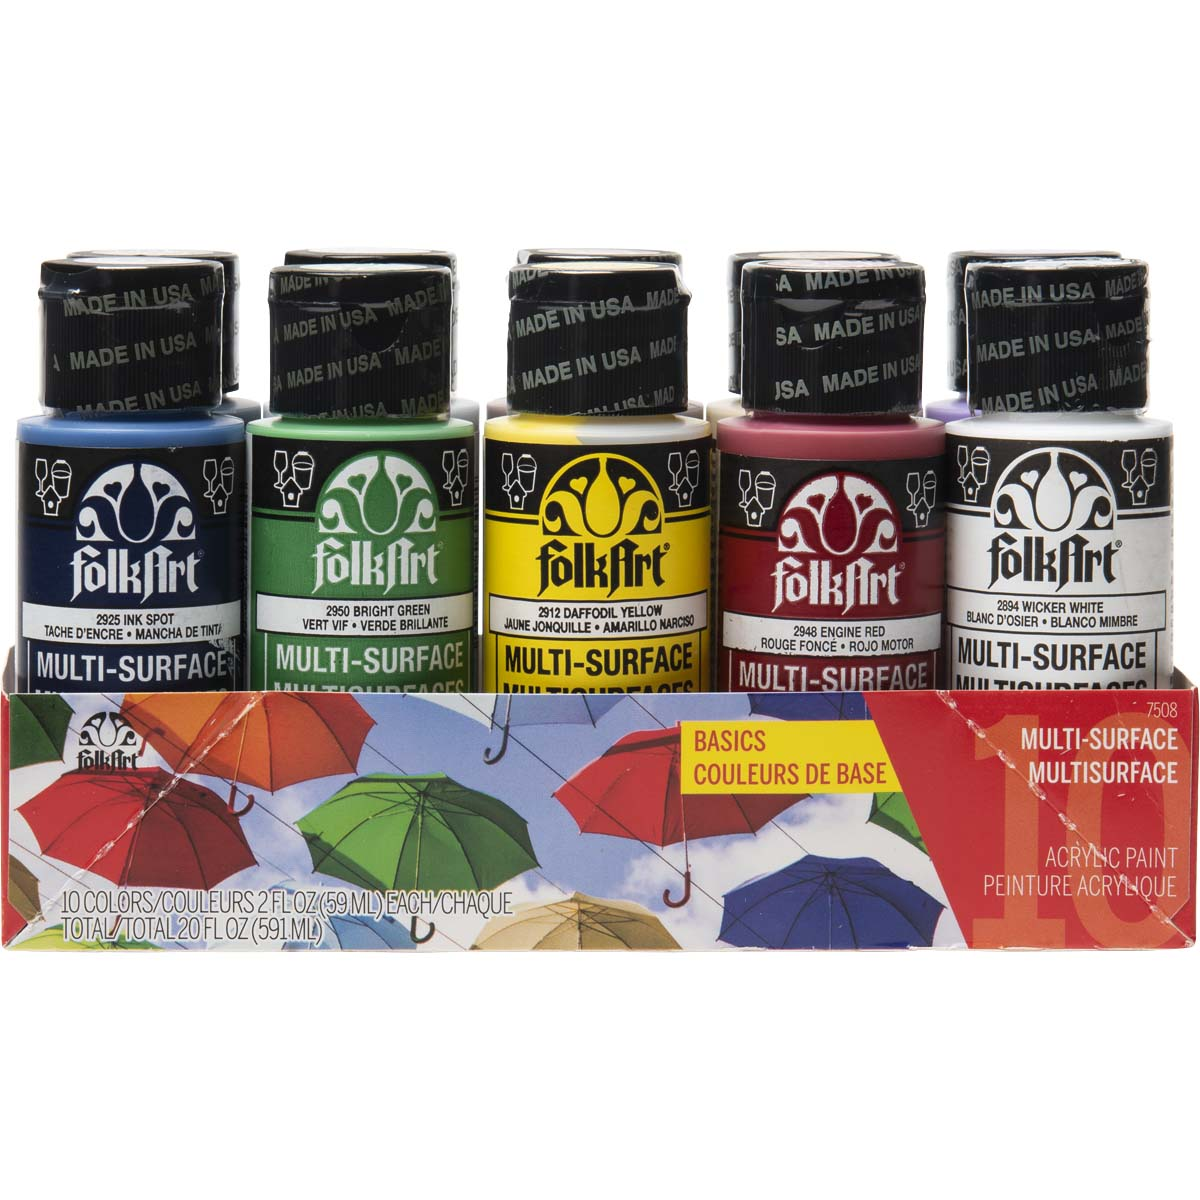 FolkArt ® Multi-Surface Satin Acrylic Paint 10 Color Set - Basics - 7508